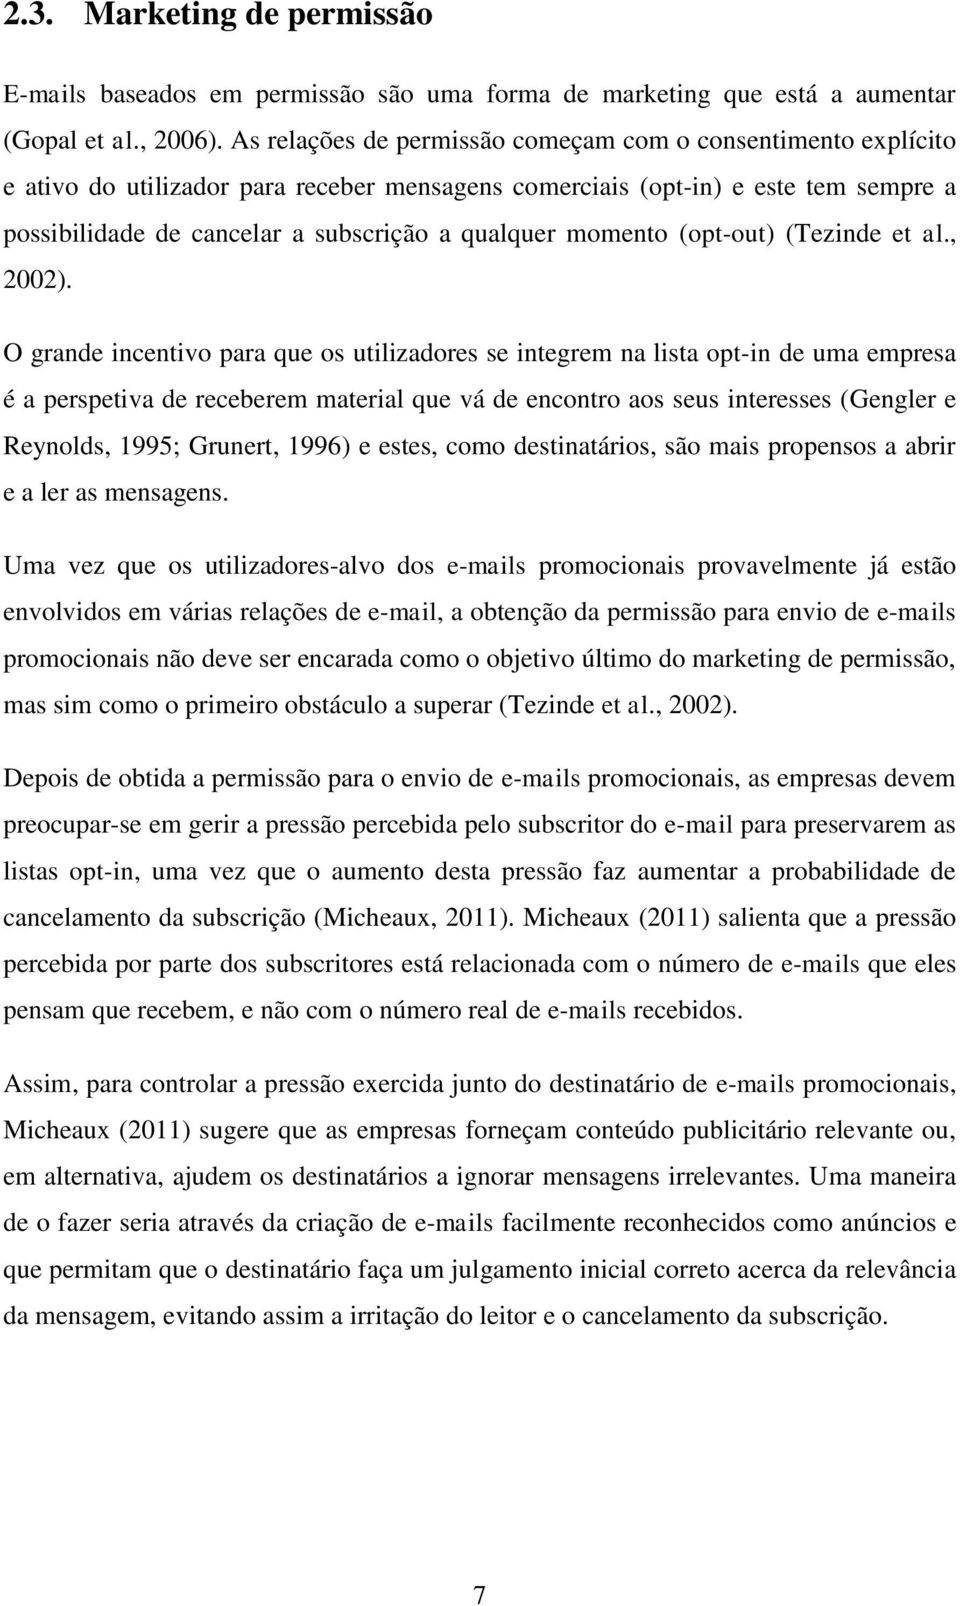 momento (opt-out) (Tezinde et al., 2002).